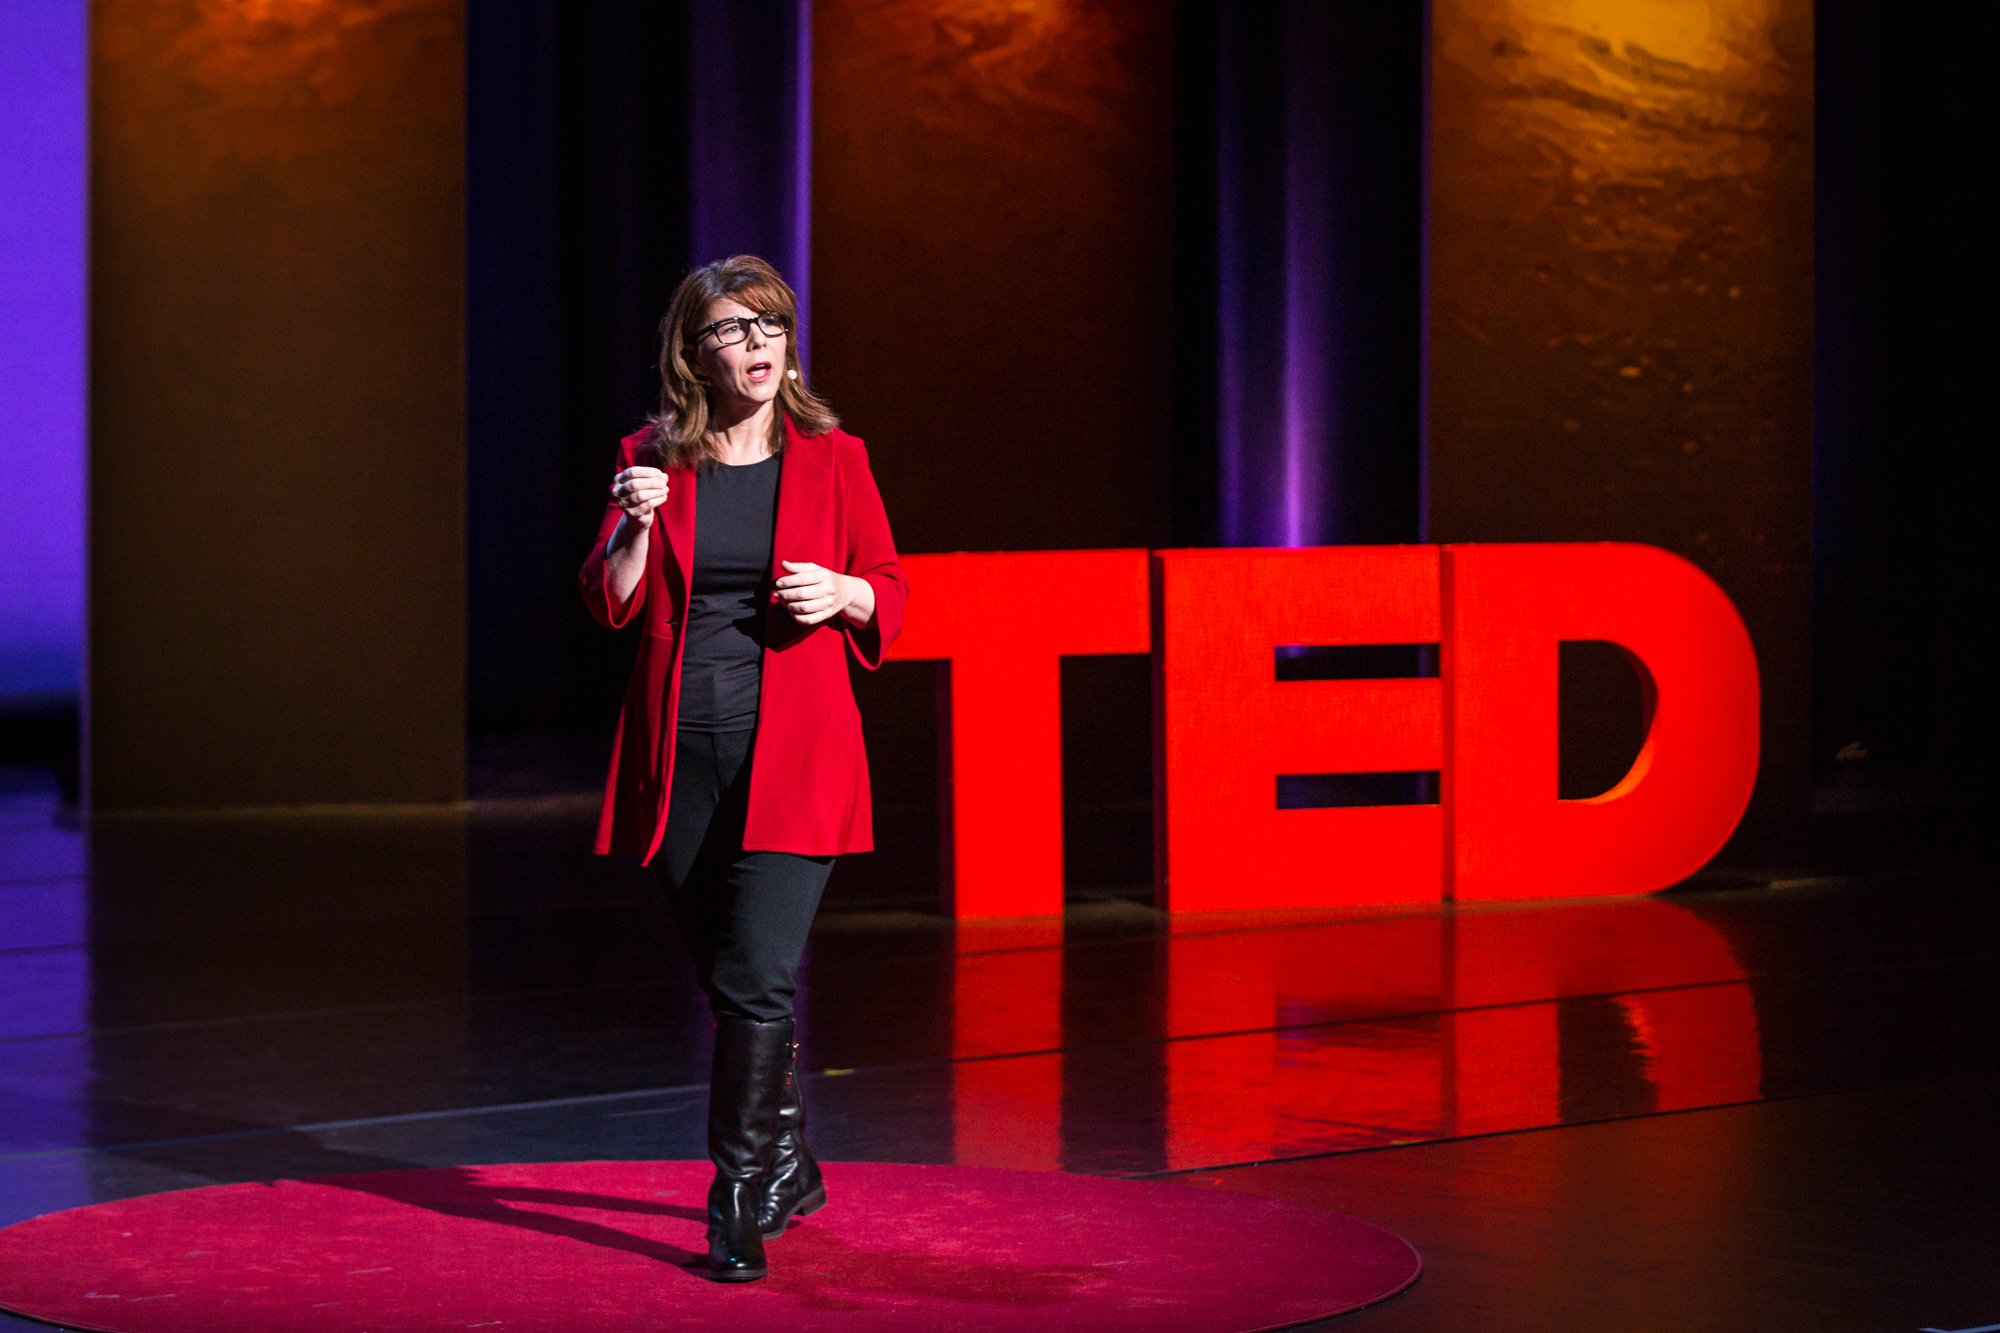 Stacy Smith at TEDWomen 2016 - It's About Time, October 26-28, 2016, Yerba Buena Centre for the Arts, San Francisco, California. Photo: Marla Aufmuth / TED